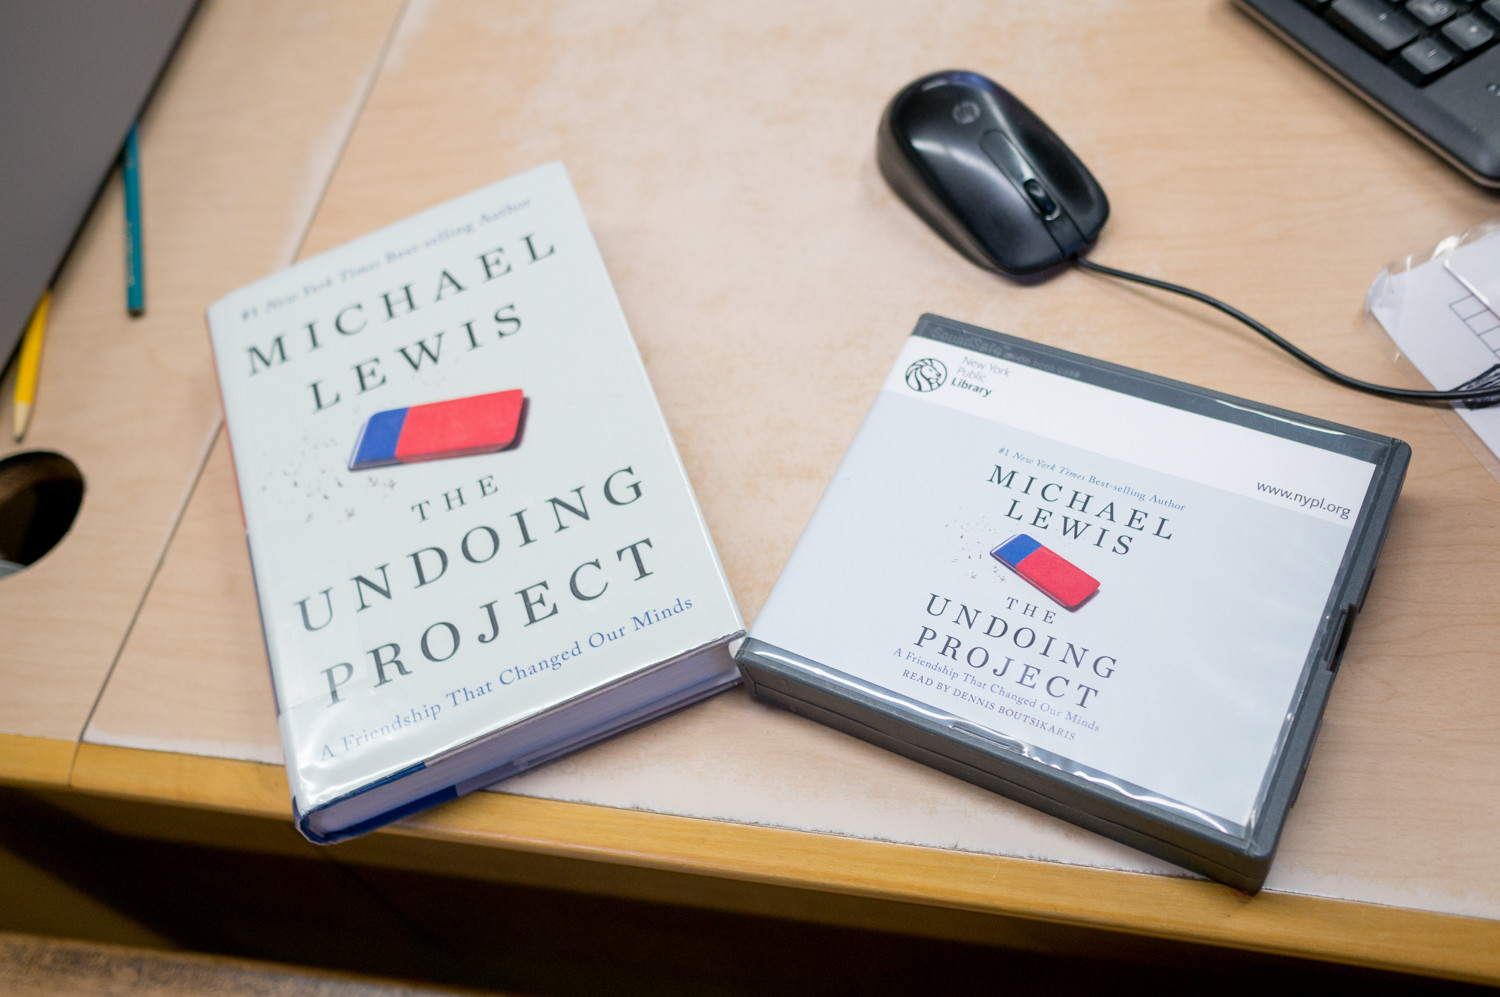 In 2017, Michael Lewis' 'The Undoing Project' was the most checked out book at Riverdale's library. Overall, the New York Public Library says it saw a 7 percent increase in the number of books checked out from last year.